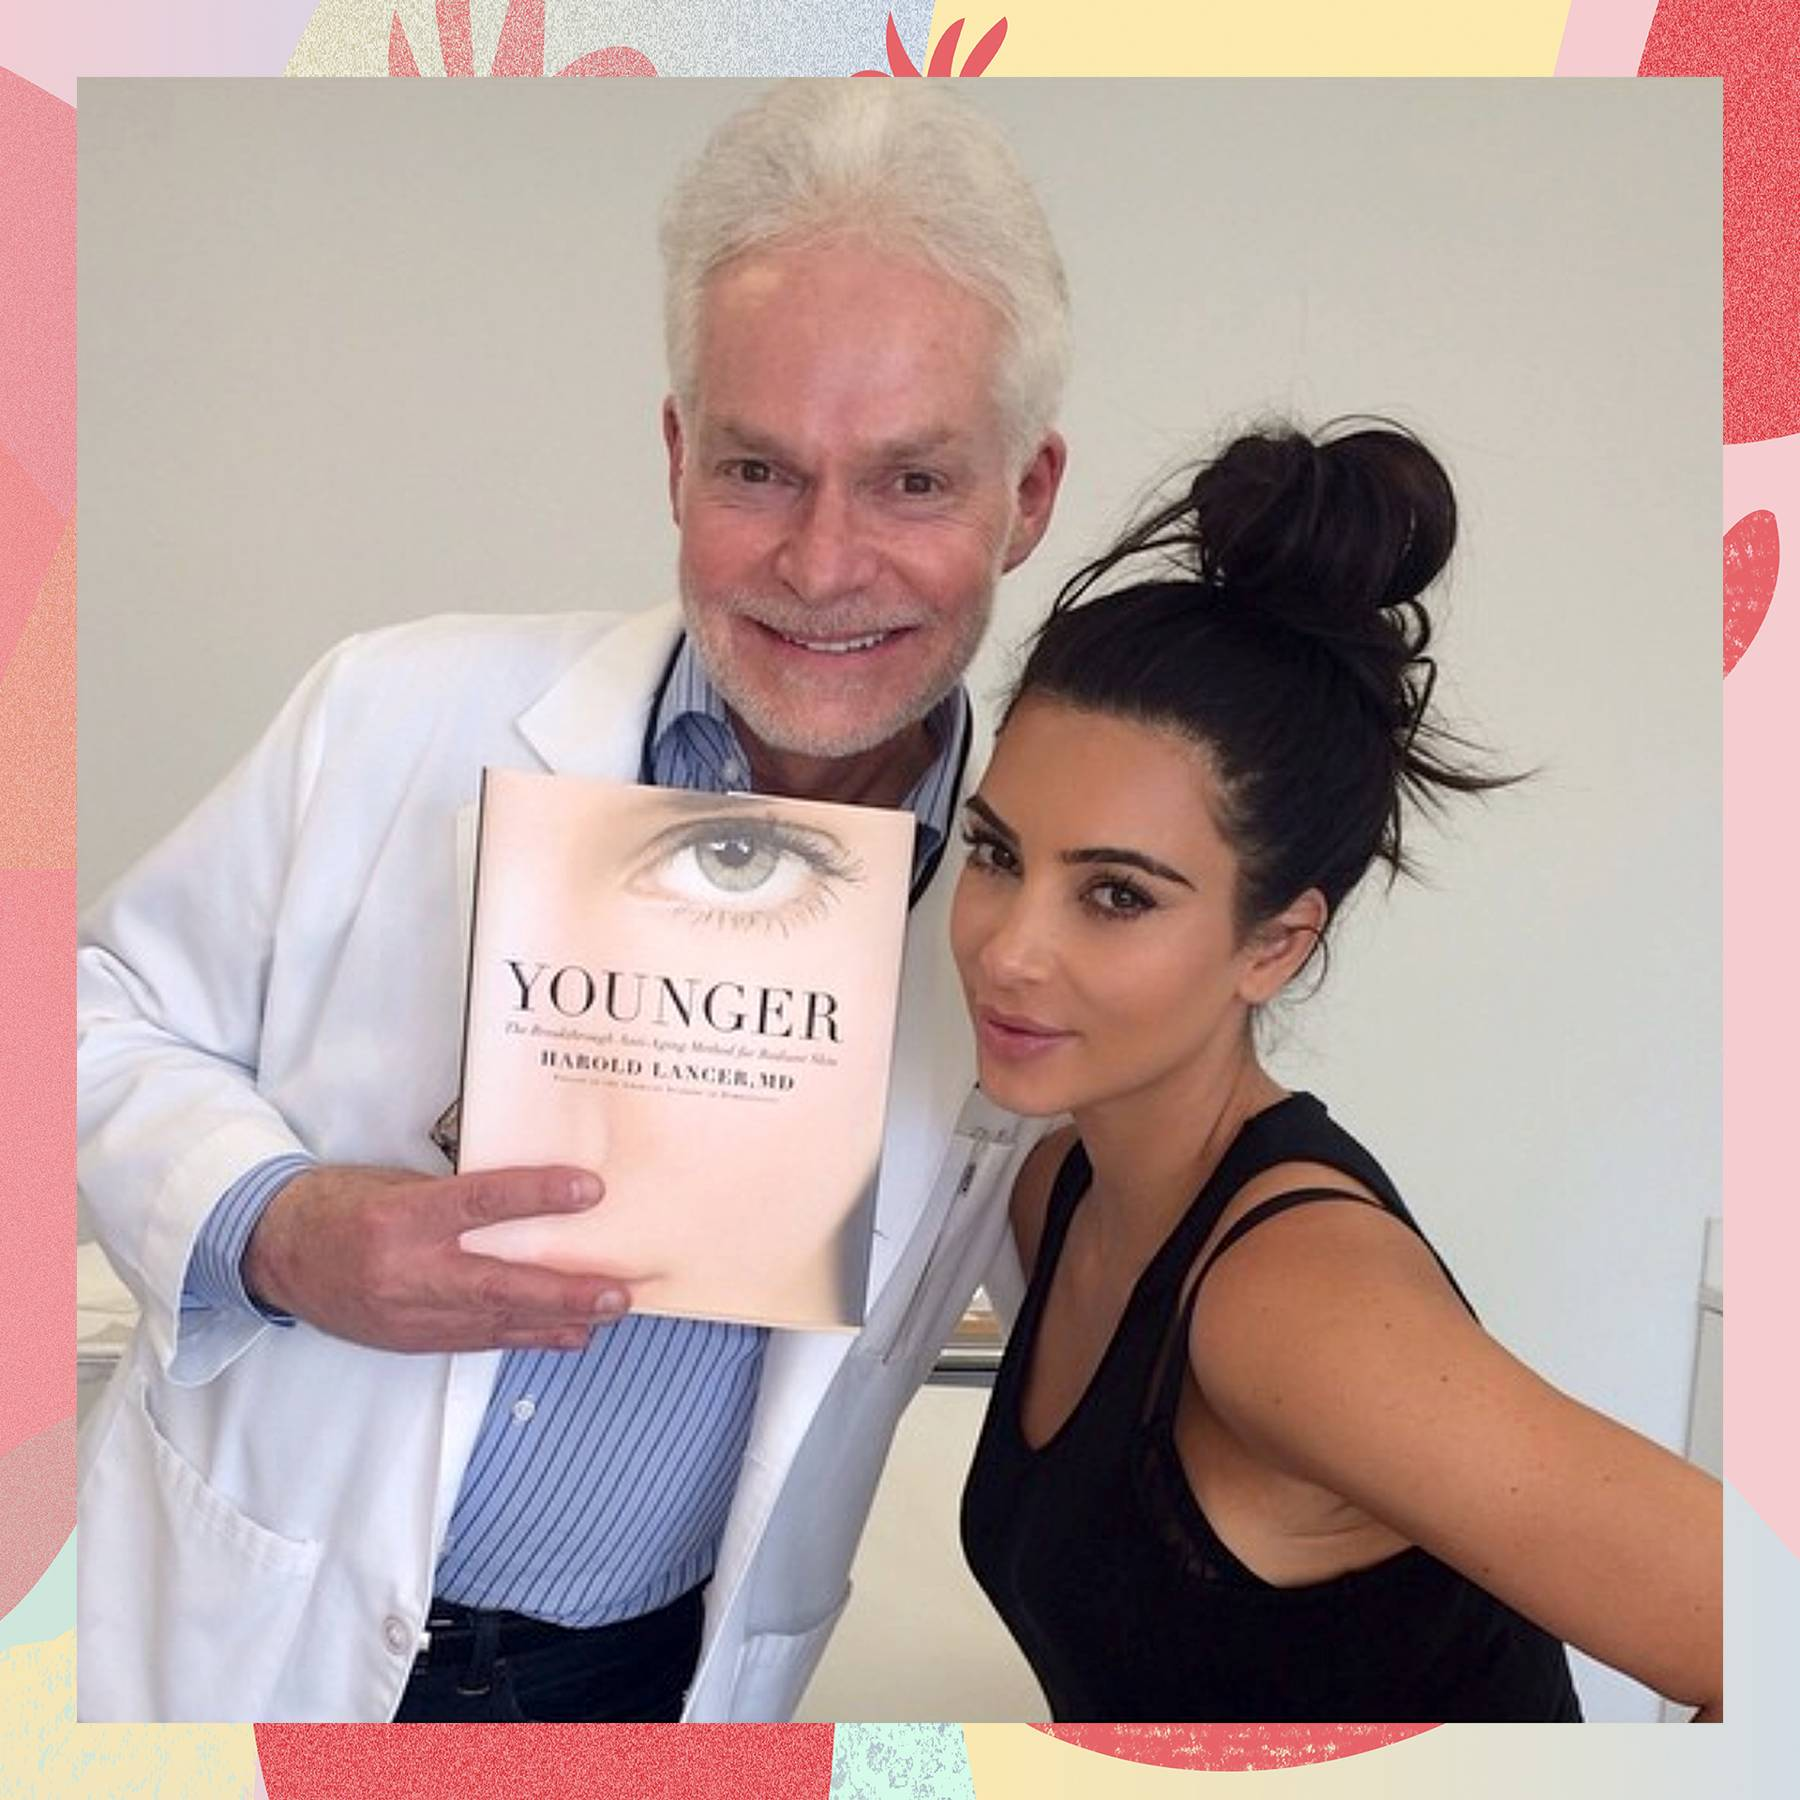 Kim Kardashian's Dermatologist Gave Me A Much-Needed Wake-Up Call